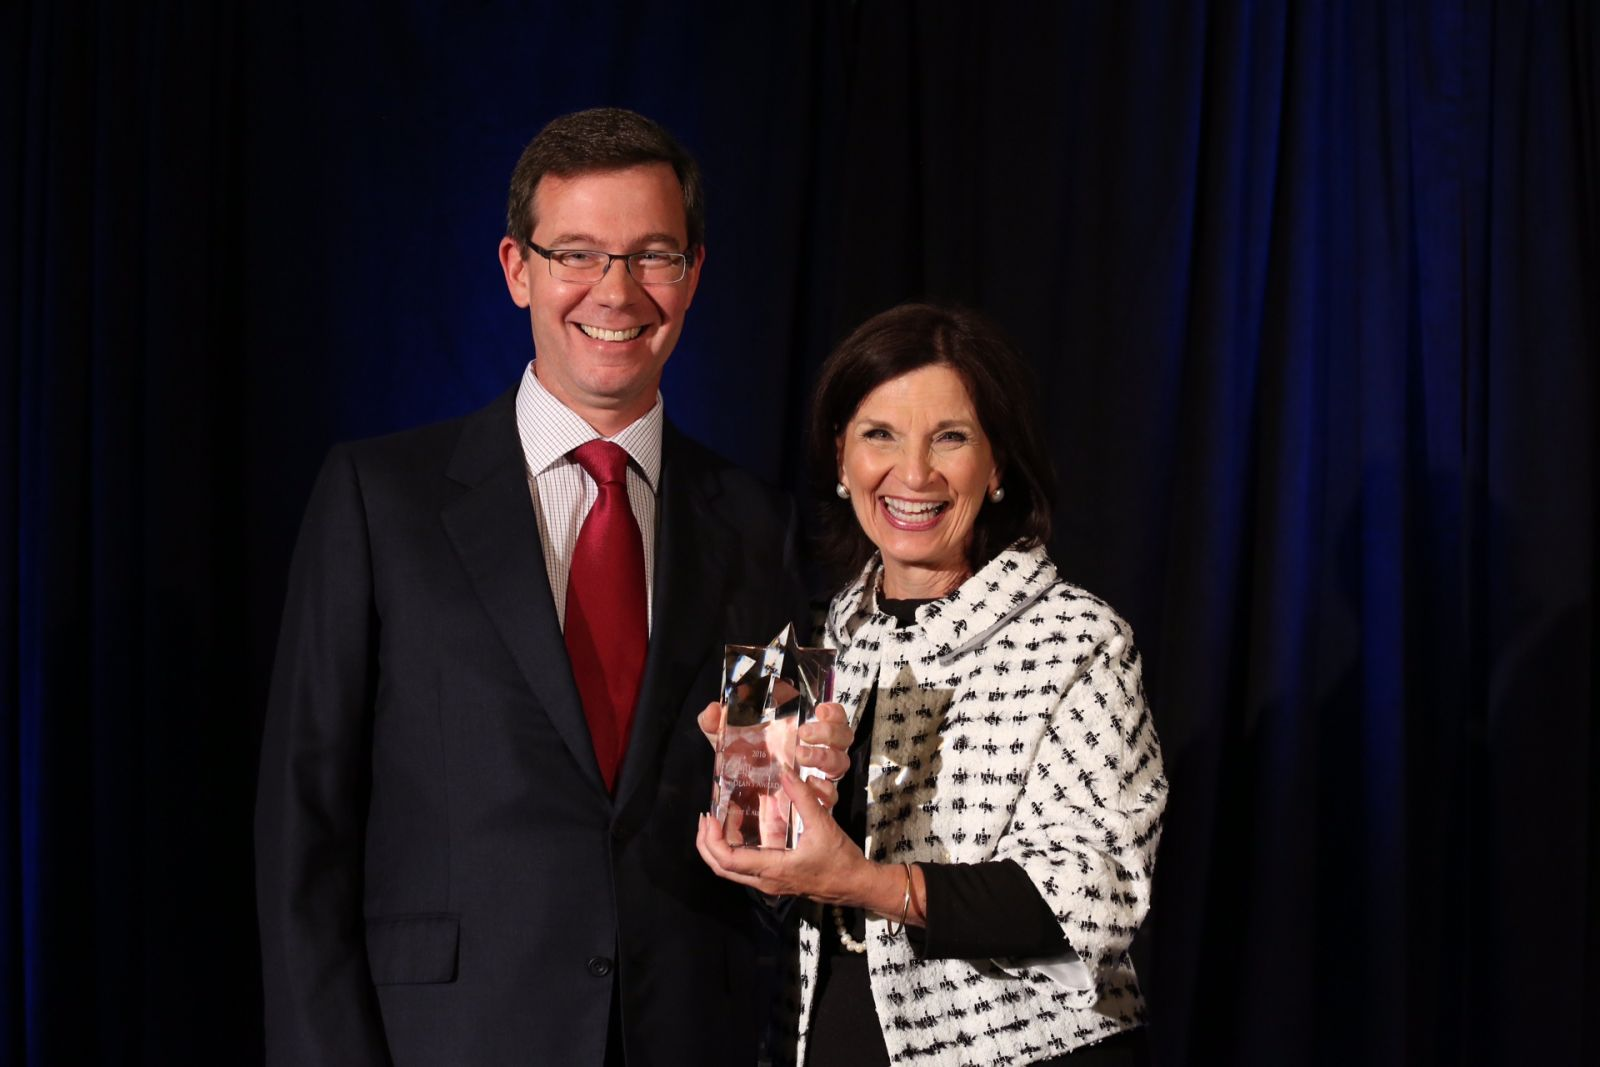 Dean Angela Evans presents the Dean's Award to Robert Allbritton, owner and founder of Politico